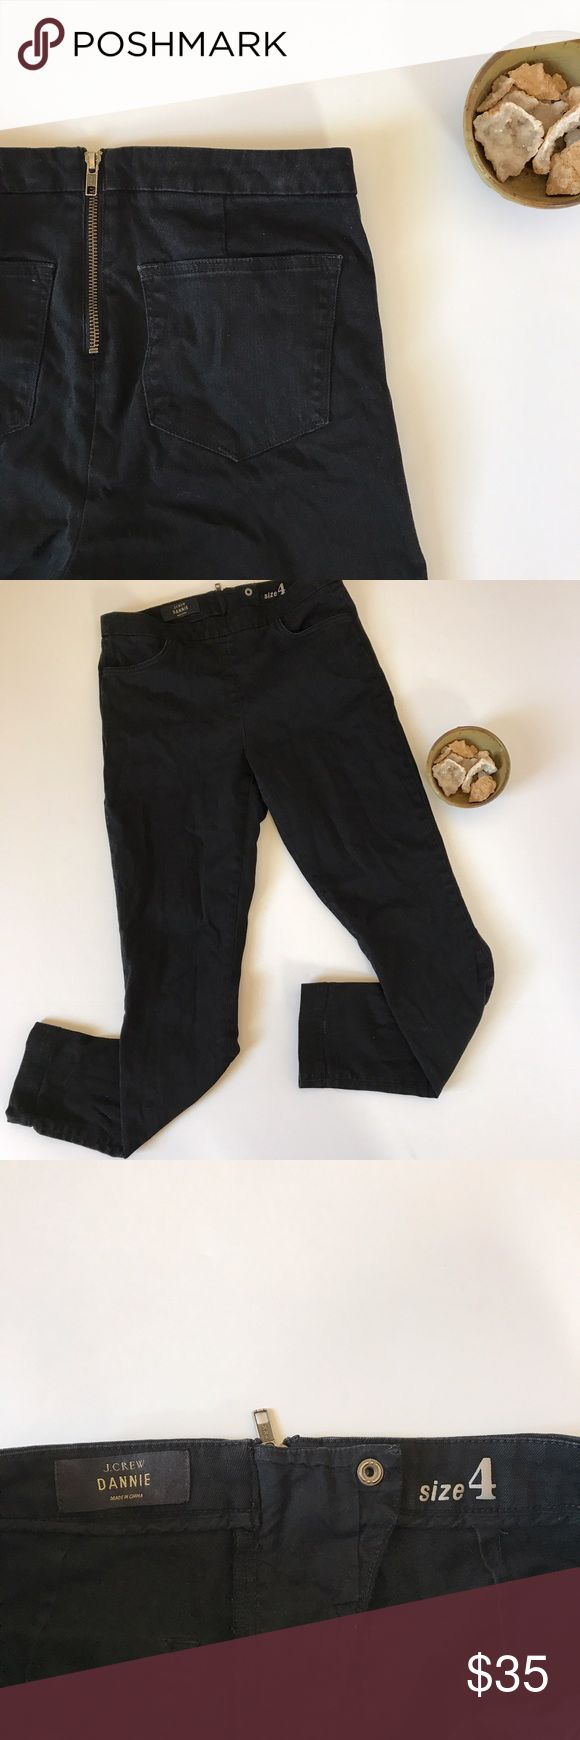 J.Crew Dannie pant 🌻 black back zip skinny size 4 This is a pair of J.Crew Dannie pants in black. They have an adorable zipper at the back, are neutral in color, and have a slim fit. These pants can be dressed up or down, and I have a feeling you'll reach for them often! They are women's size 4. They are gently pre-loved with some light wash-wear, but no major signs of wear 😉. J. Crew Pants Skinny